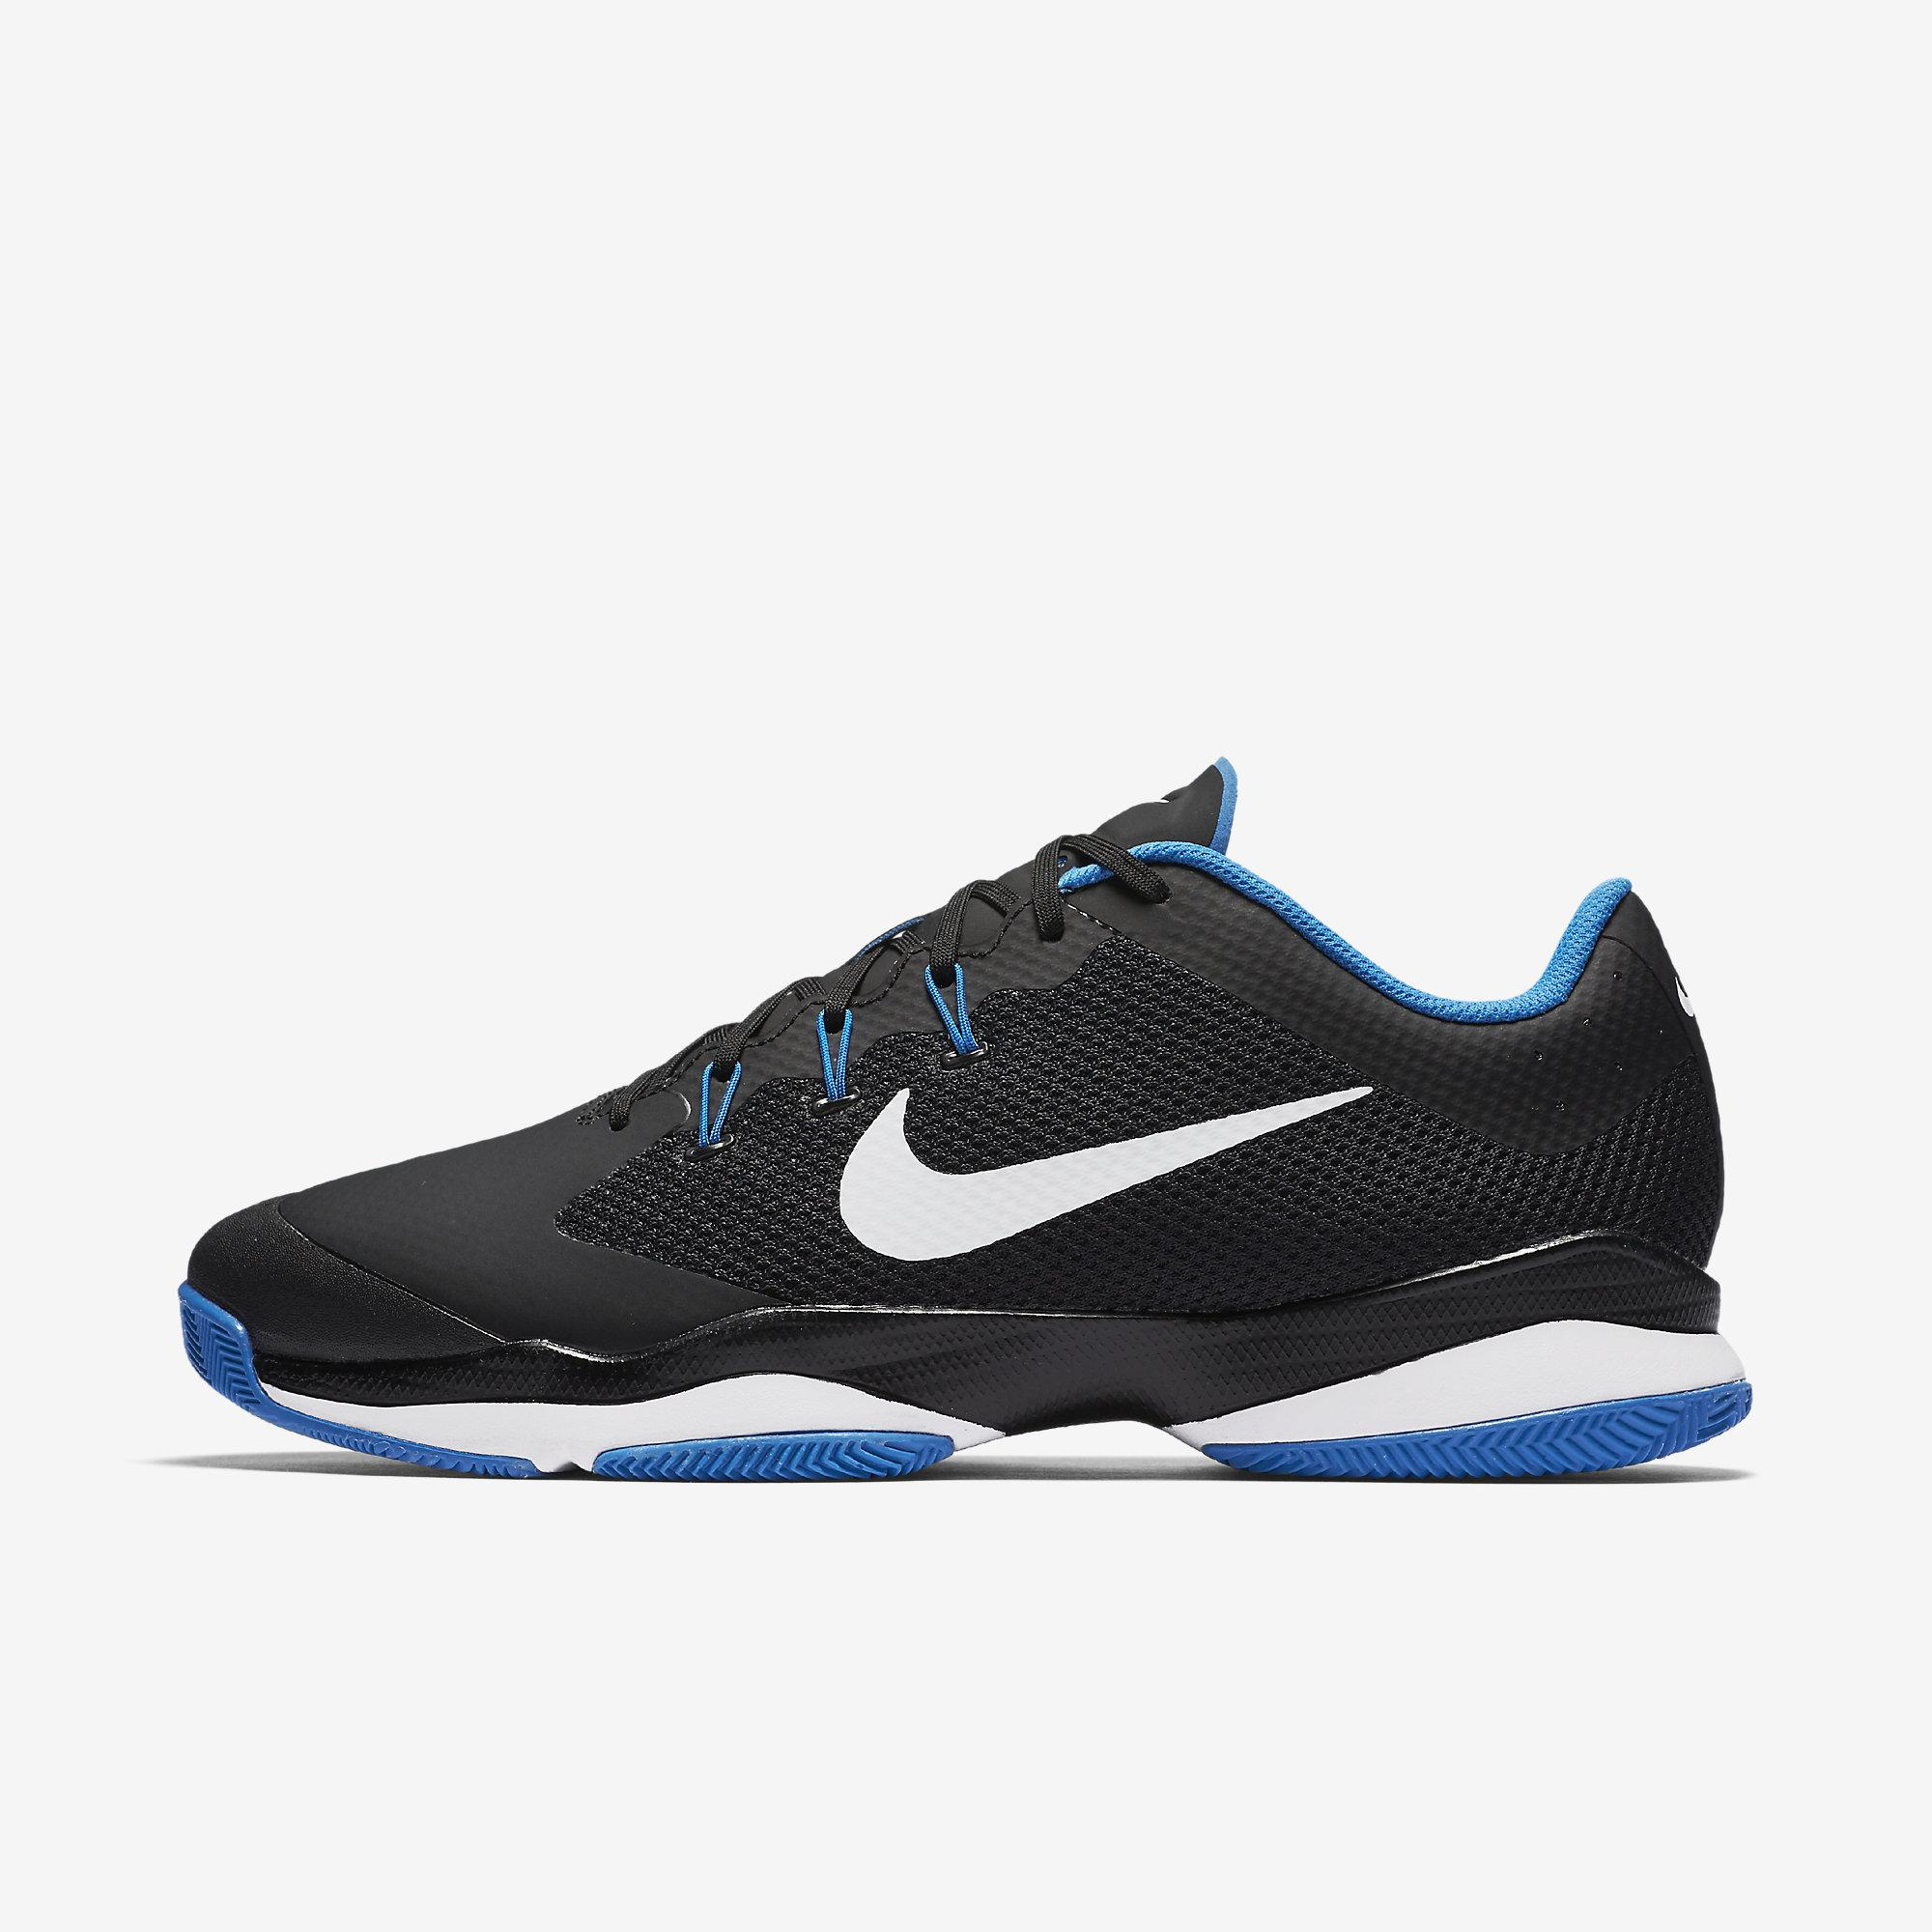 Nike Mens Air Zoom Ultra Tennis Shoes - Black/Blue ...